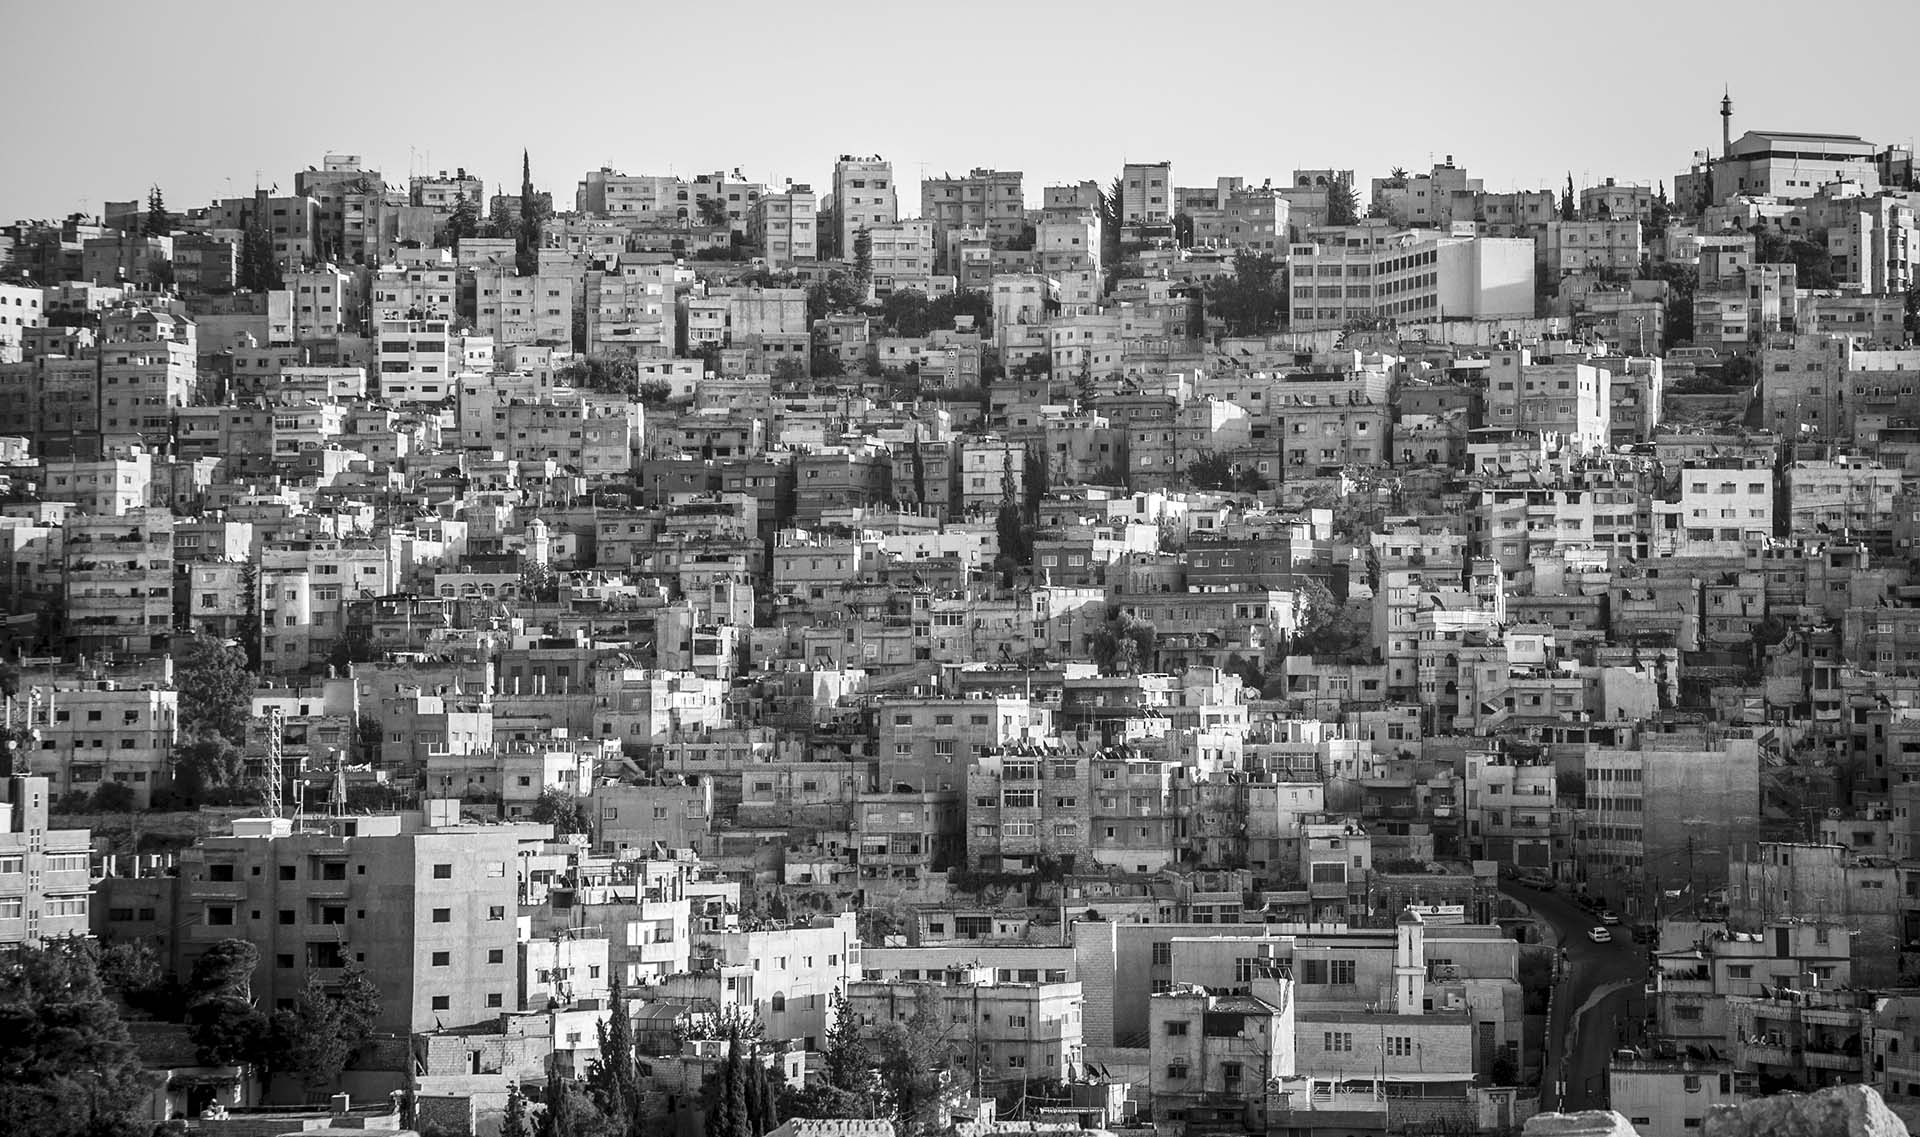 Afraid of deportation, most Iraqi refugees stay indoors in densely populated Amman, Jordan.